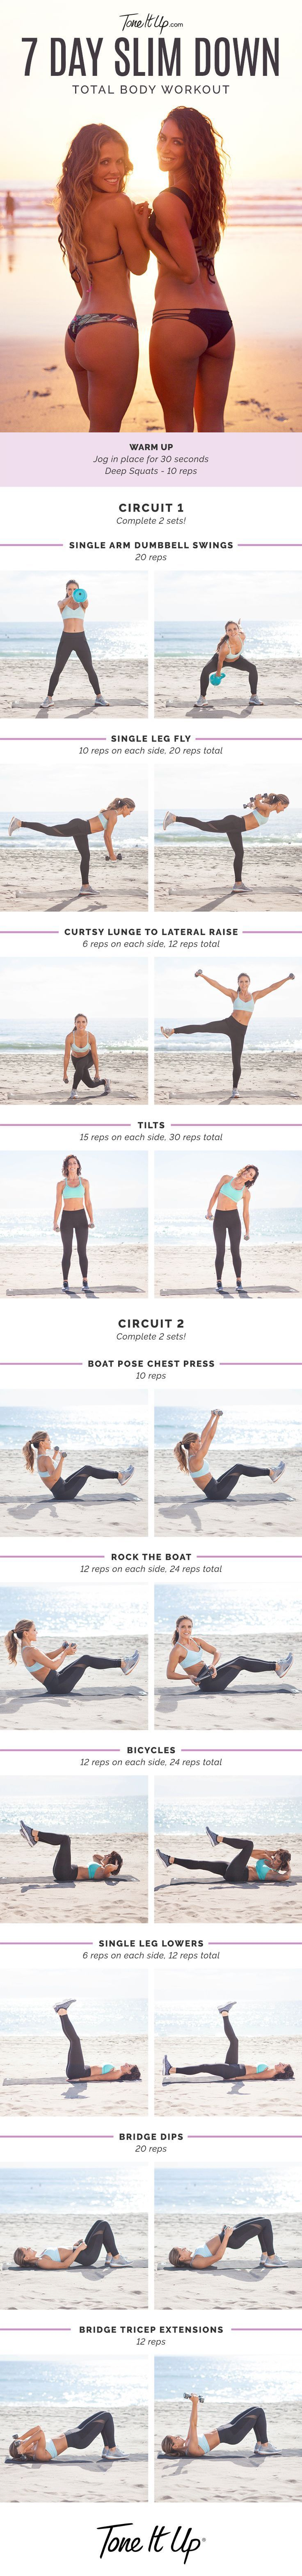 NEW Total Body 7 Day Slim Down Workout – ToneItUp.com